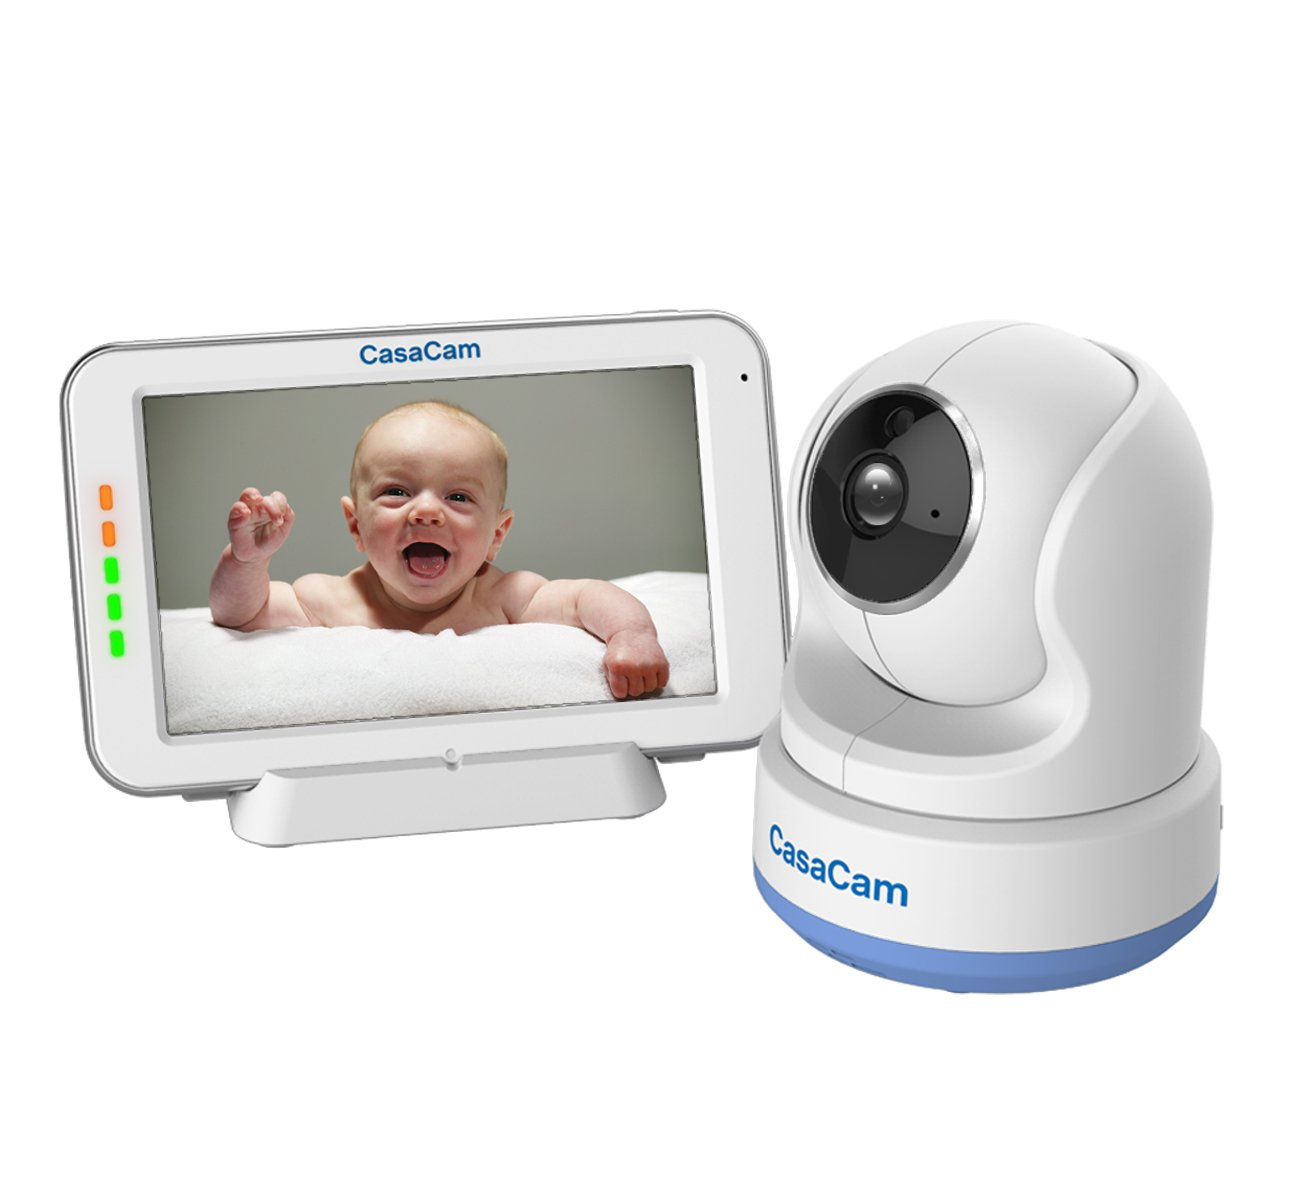 "CasaCam BM200 Video Baby Monitor with 5"" Touchscreen and HD Pan & Tilt Camera, Two Way Audio, Lullabies, Nightlight, Automatic Night Vision and Temperature Monitoring Capability"